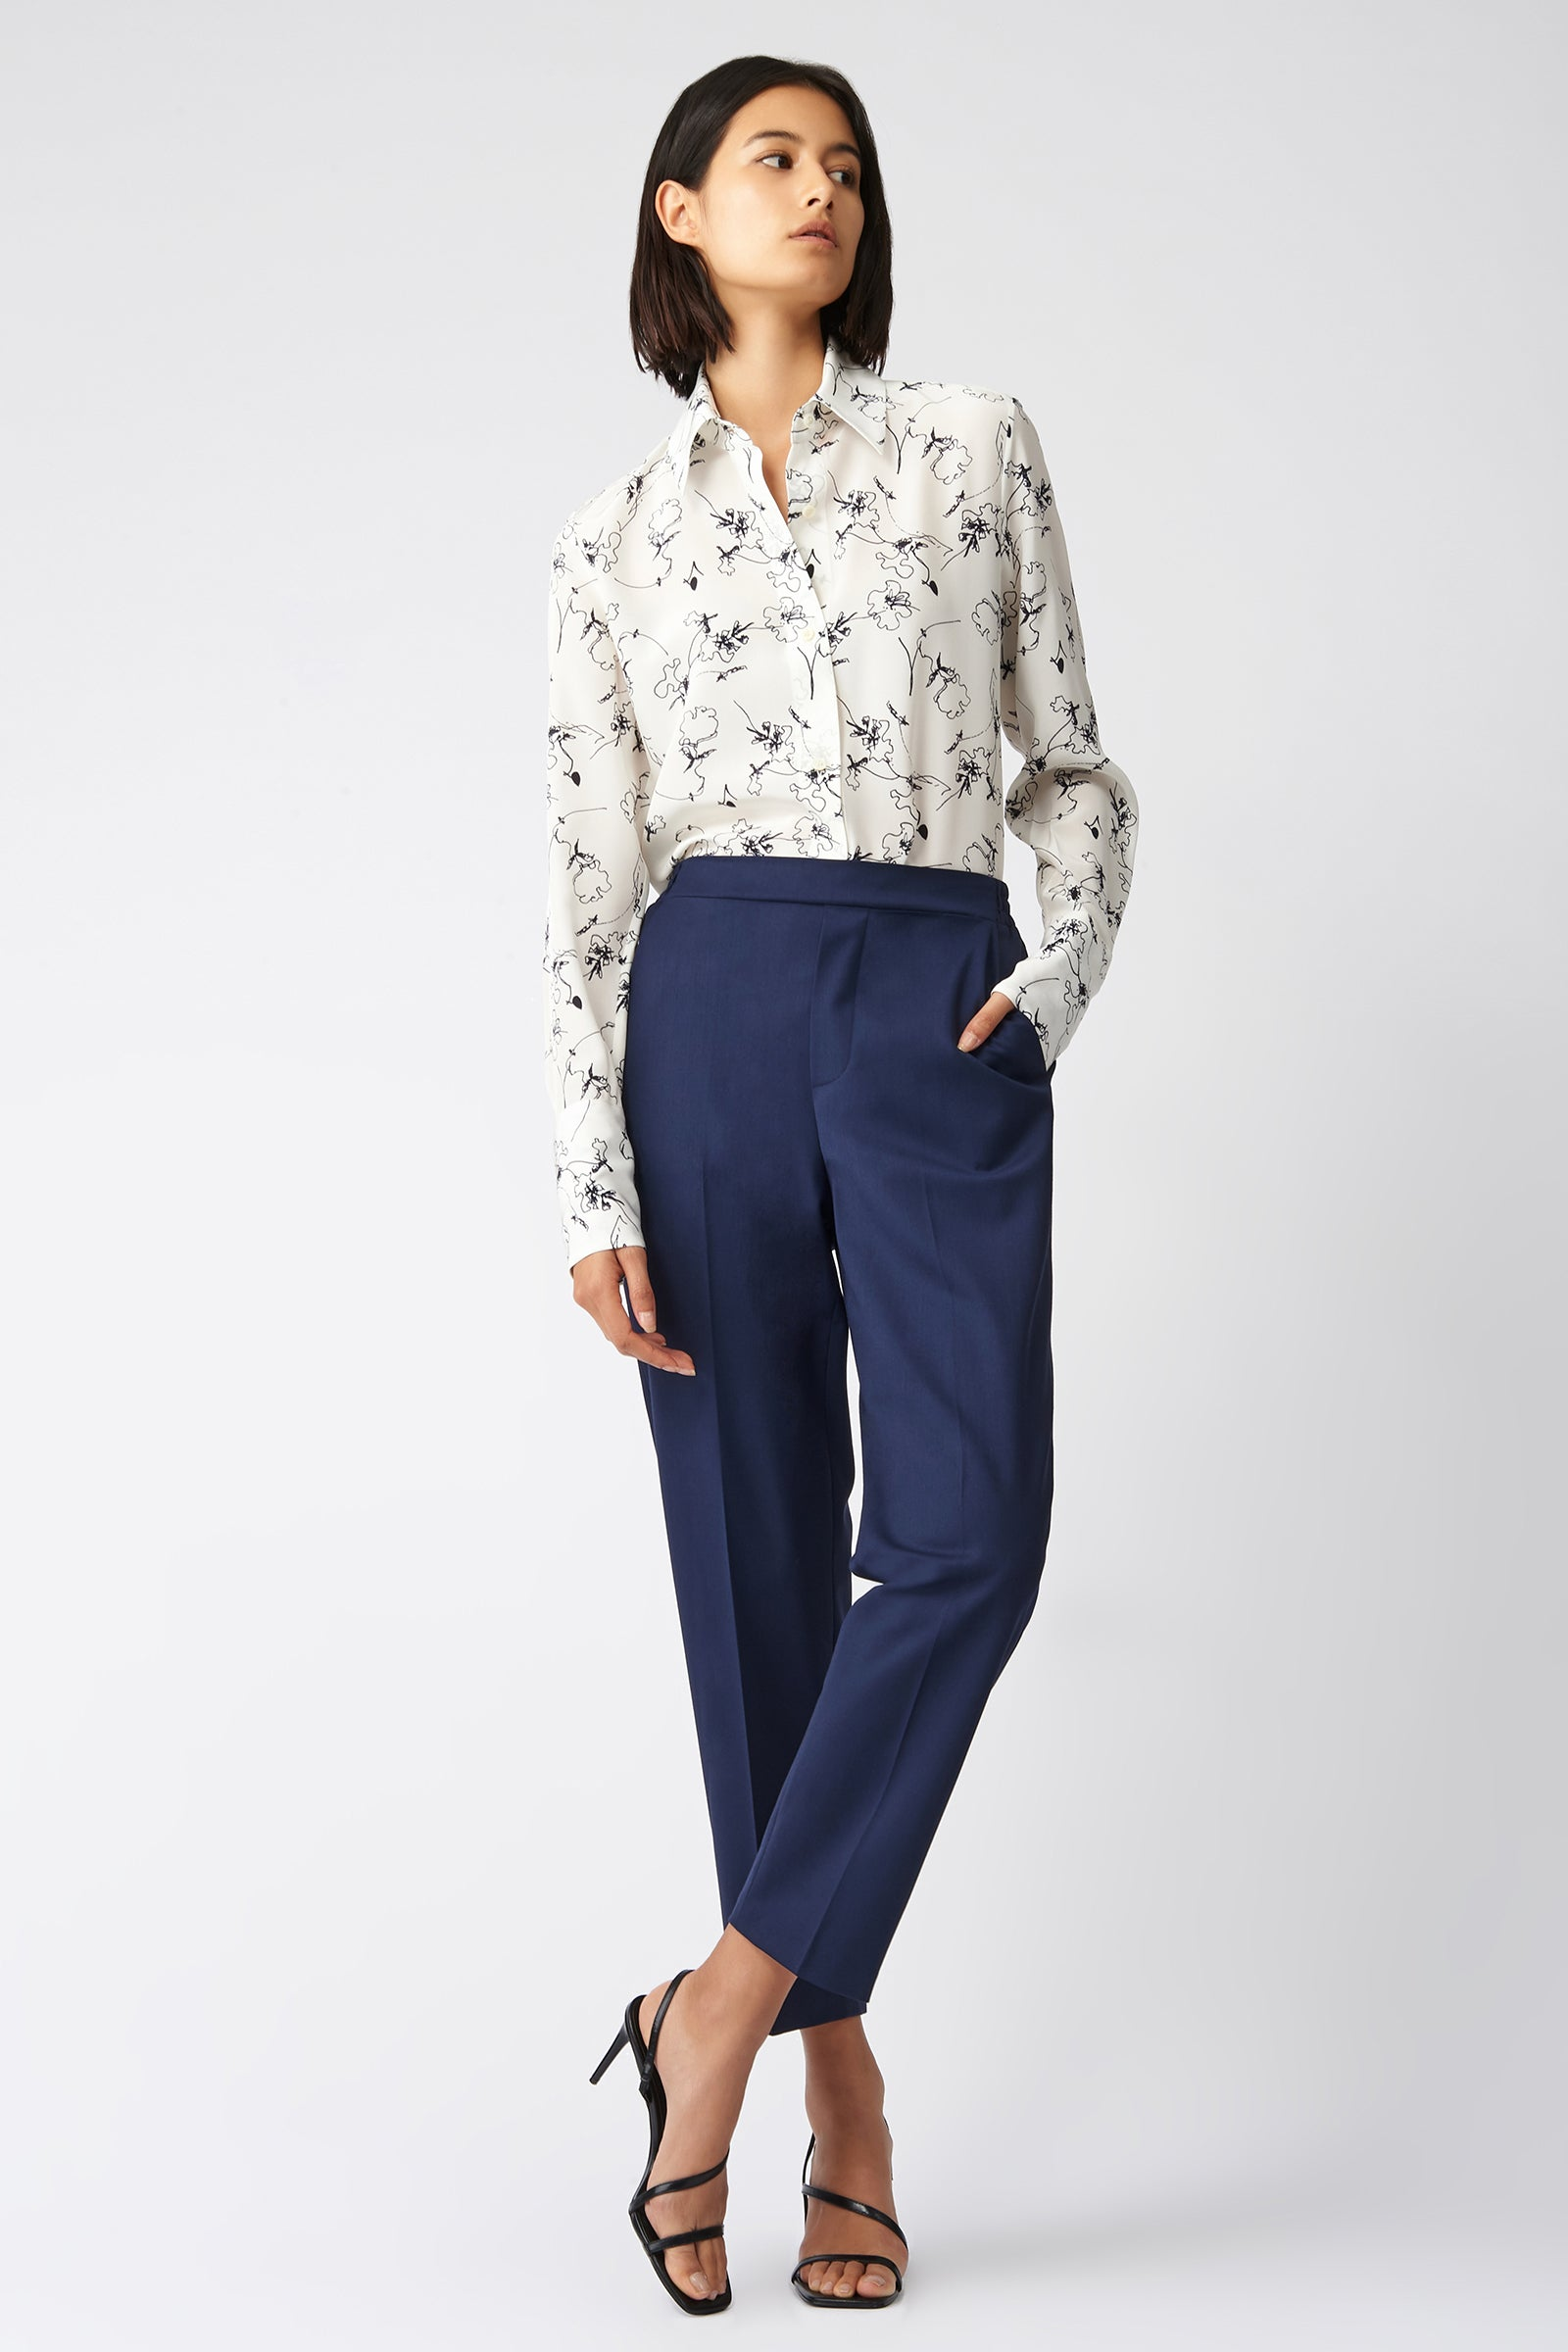 Kal Rieman Elastic Back Trouser in Navy on Model Full Front View